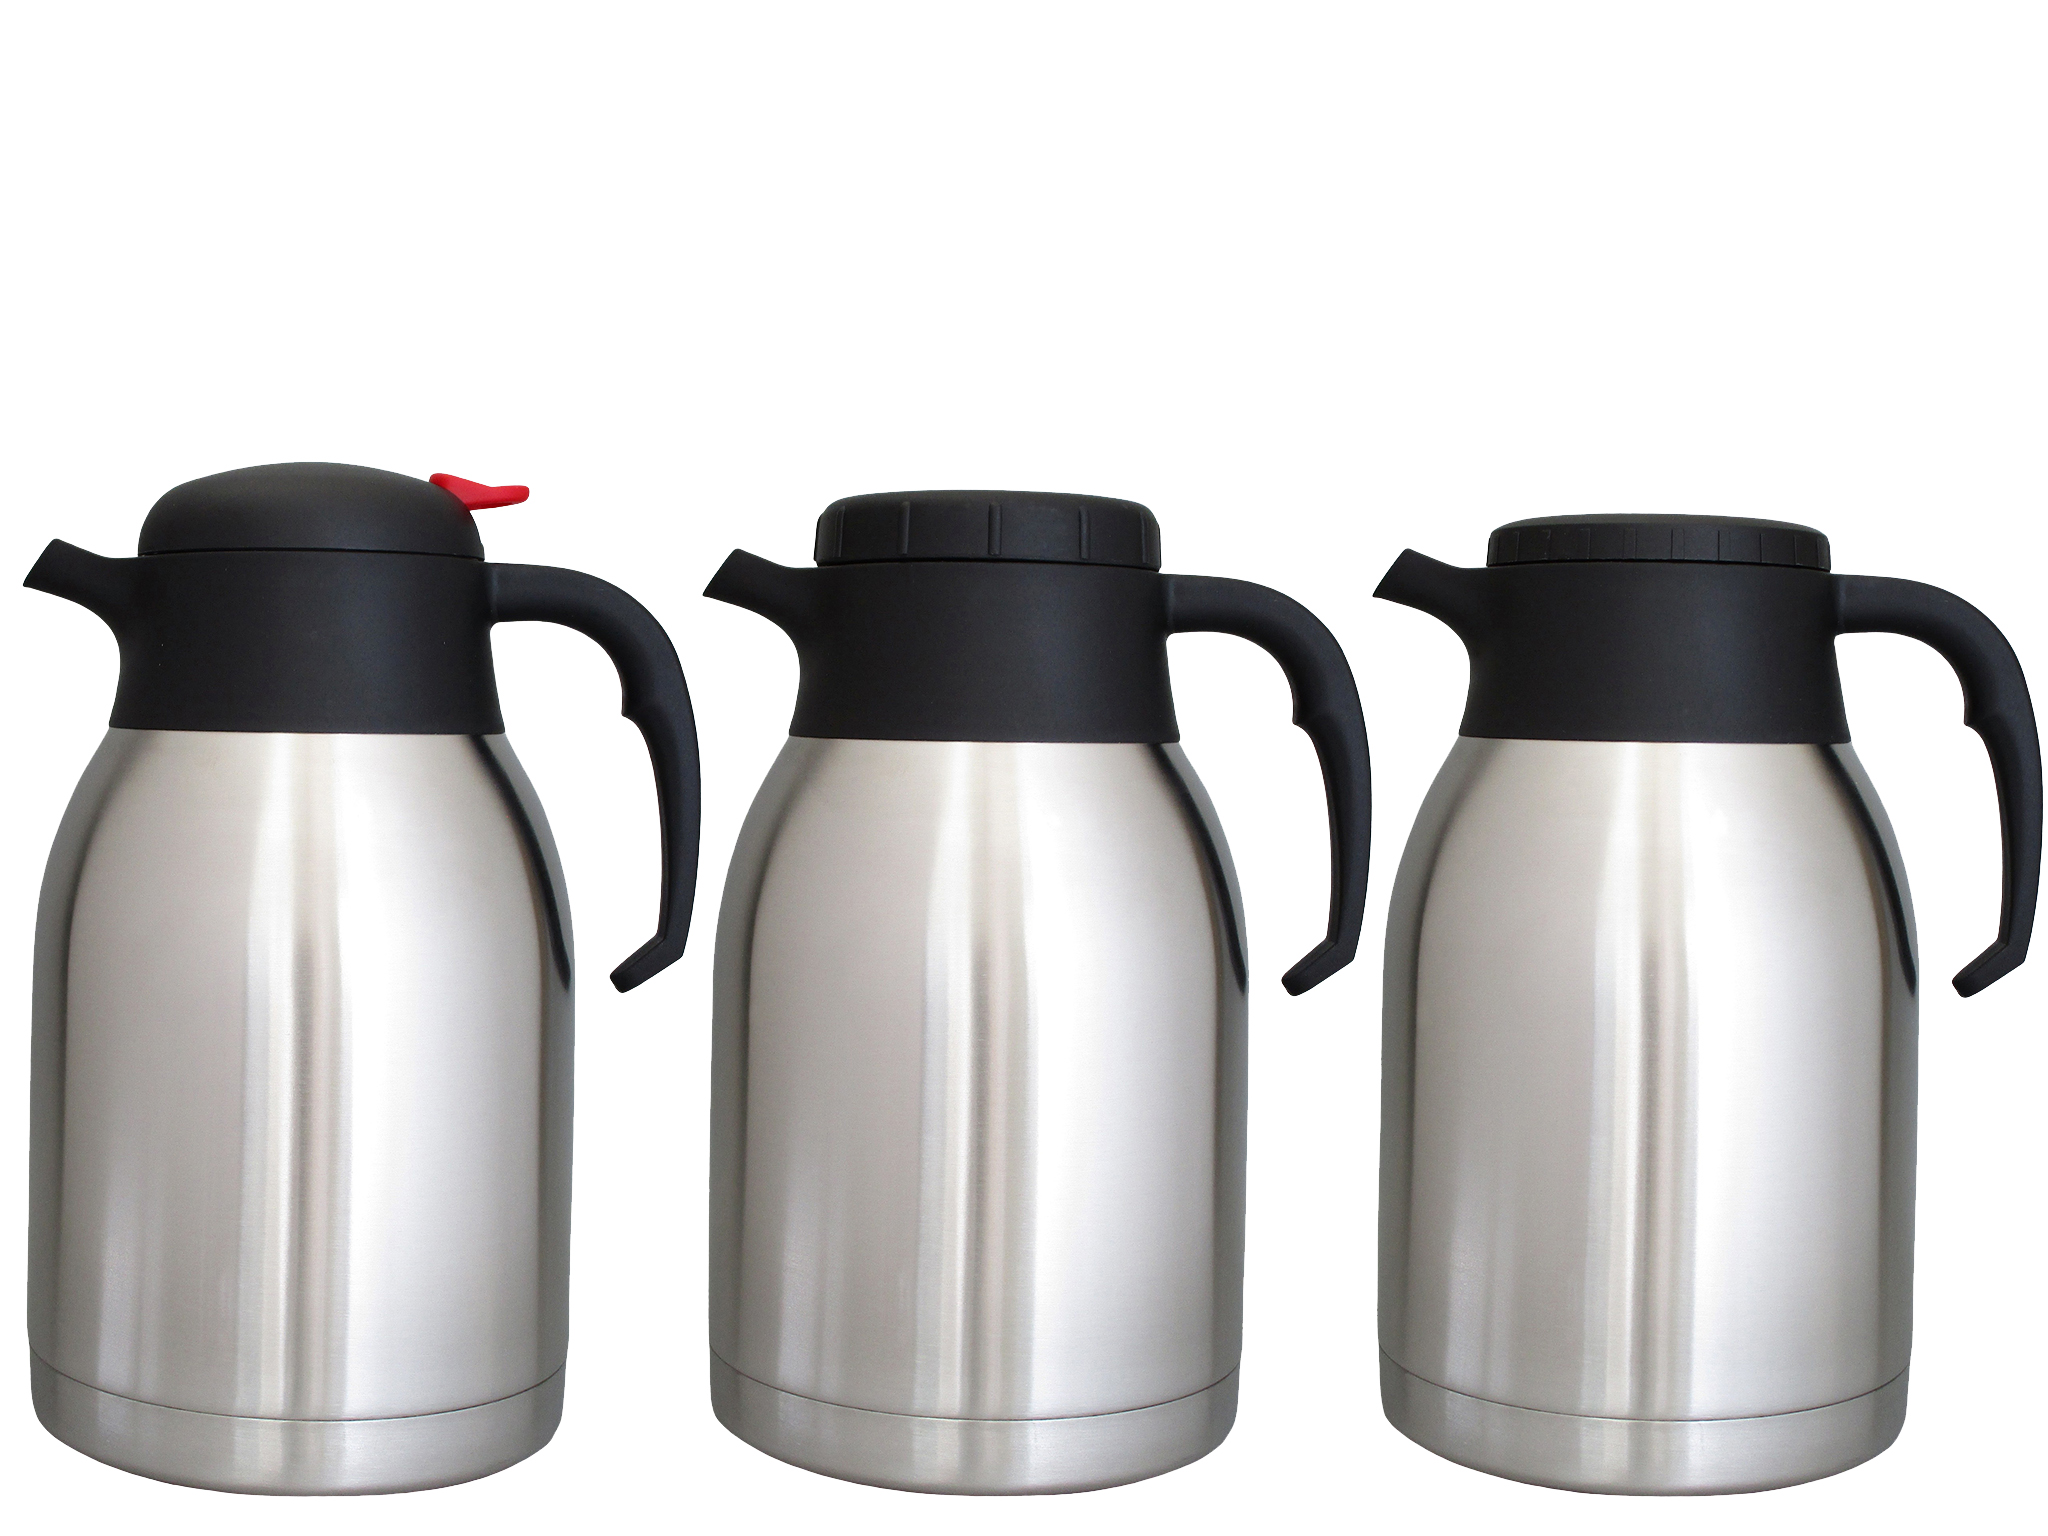 V2099-S01 - Vacuum carafe SS unbreakable 2.0 L (pushbutton) - Isobel Silver Line